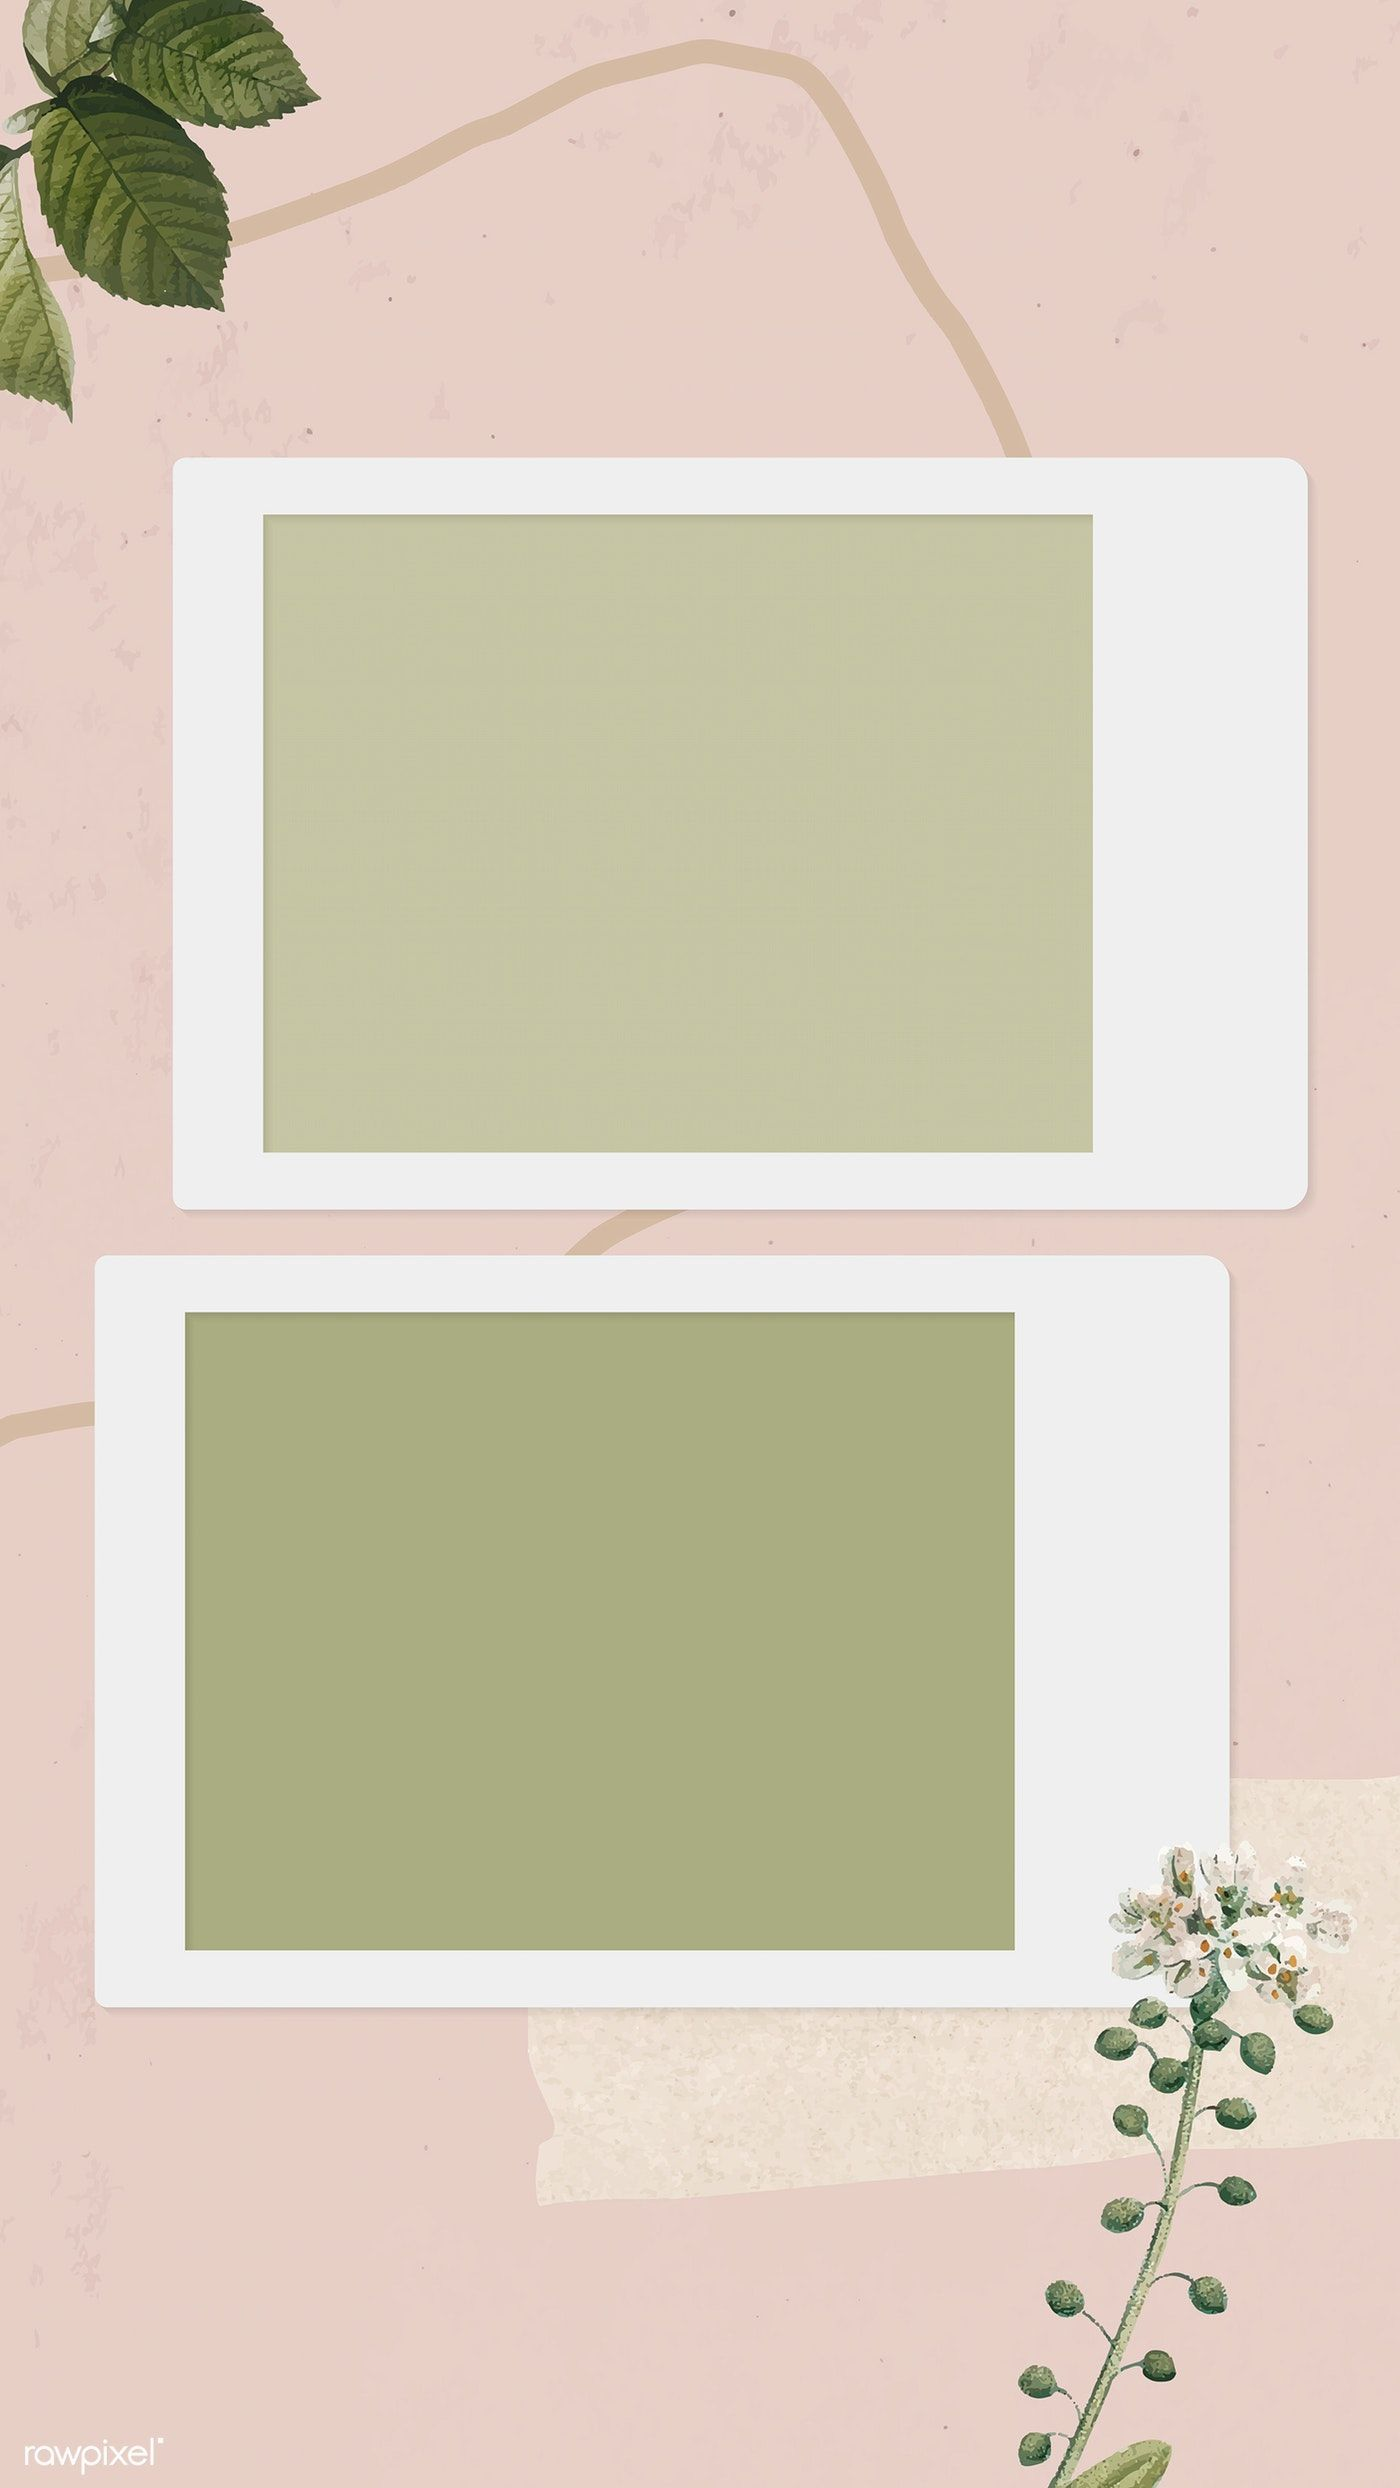 Download Premium Vector Of Blank Collage Photo Frame Template On Pink Instagram Frame Template Photo Collage Template Instagram Frame